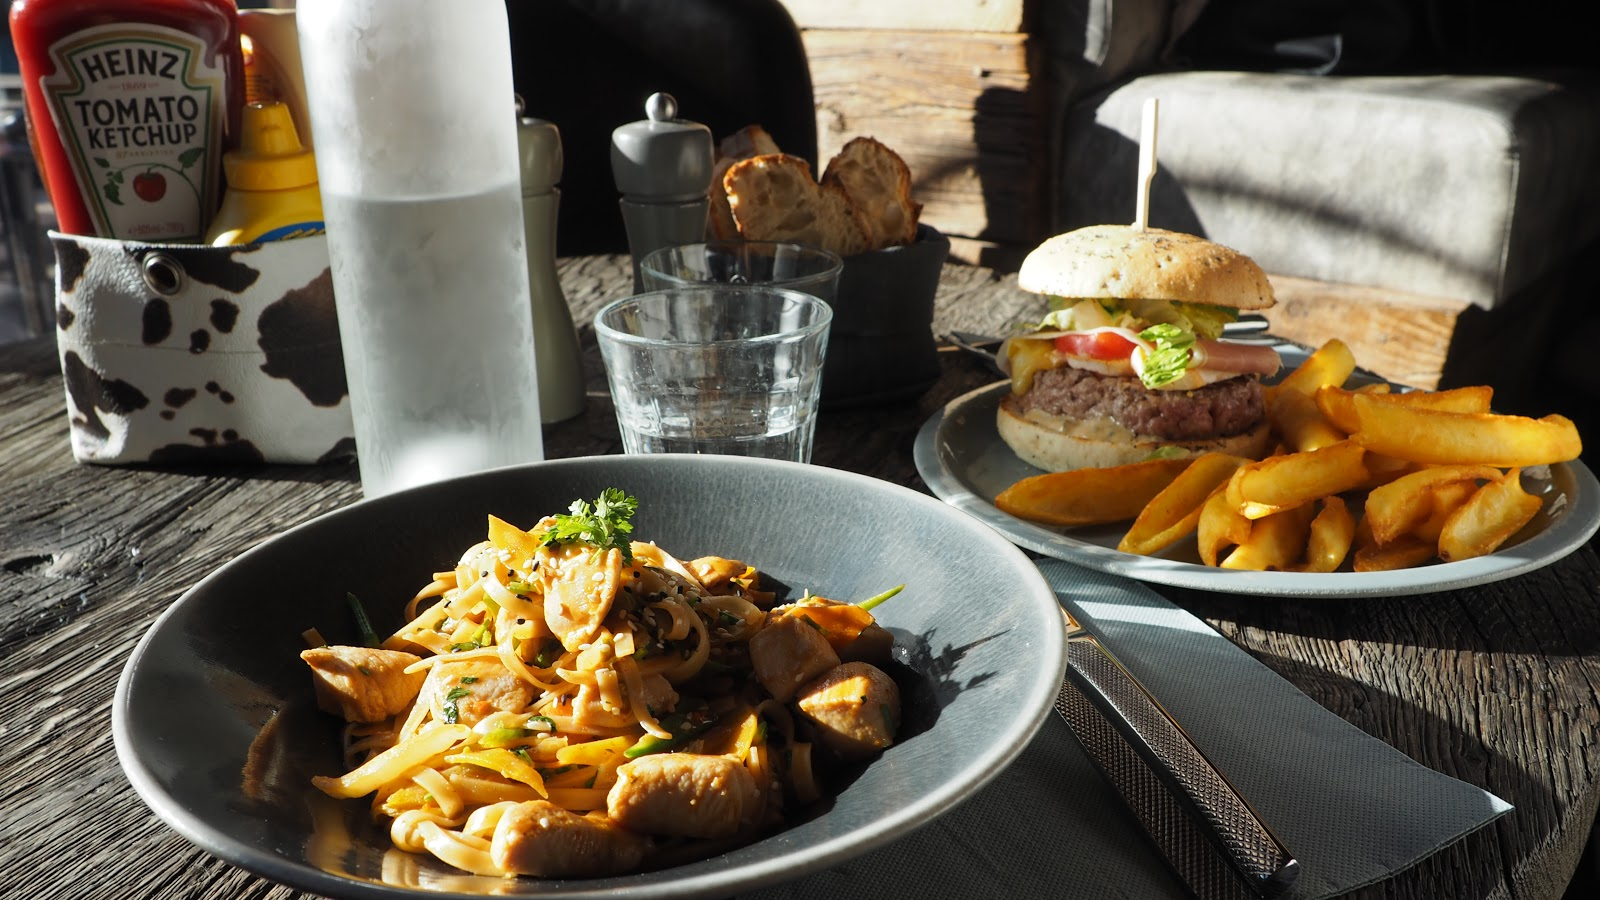 stir fry and burger with chips on a wooden table La Baraque in Val d'isere, France